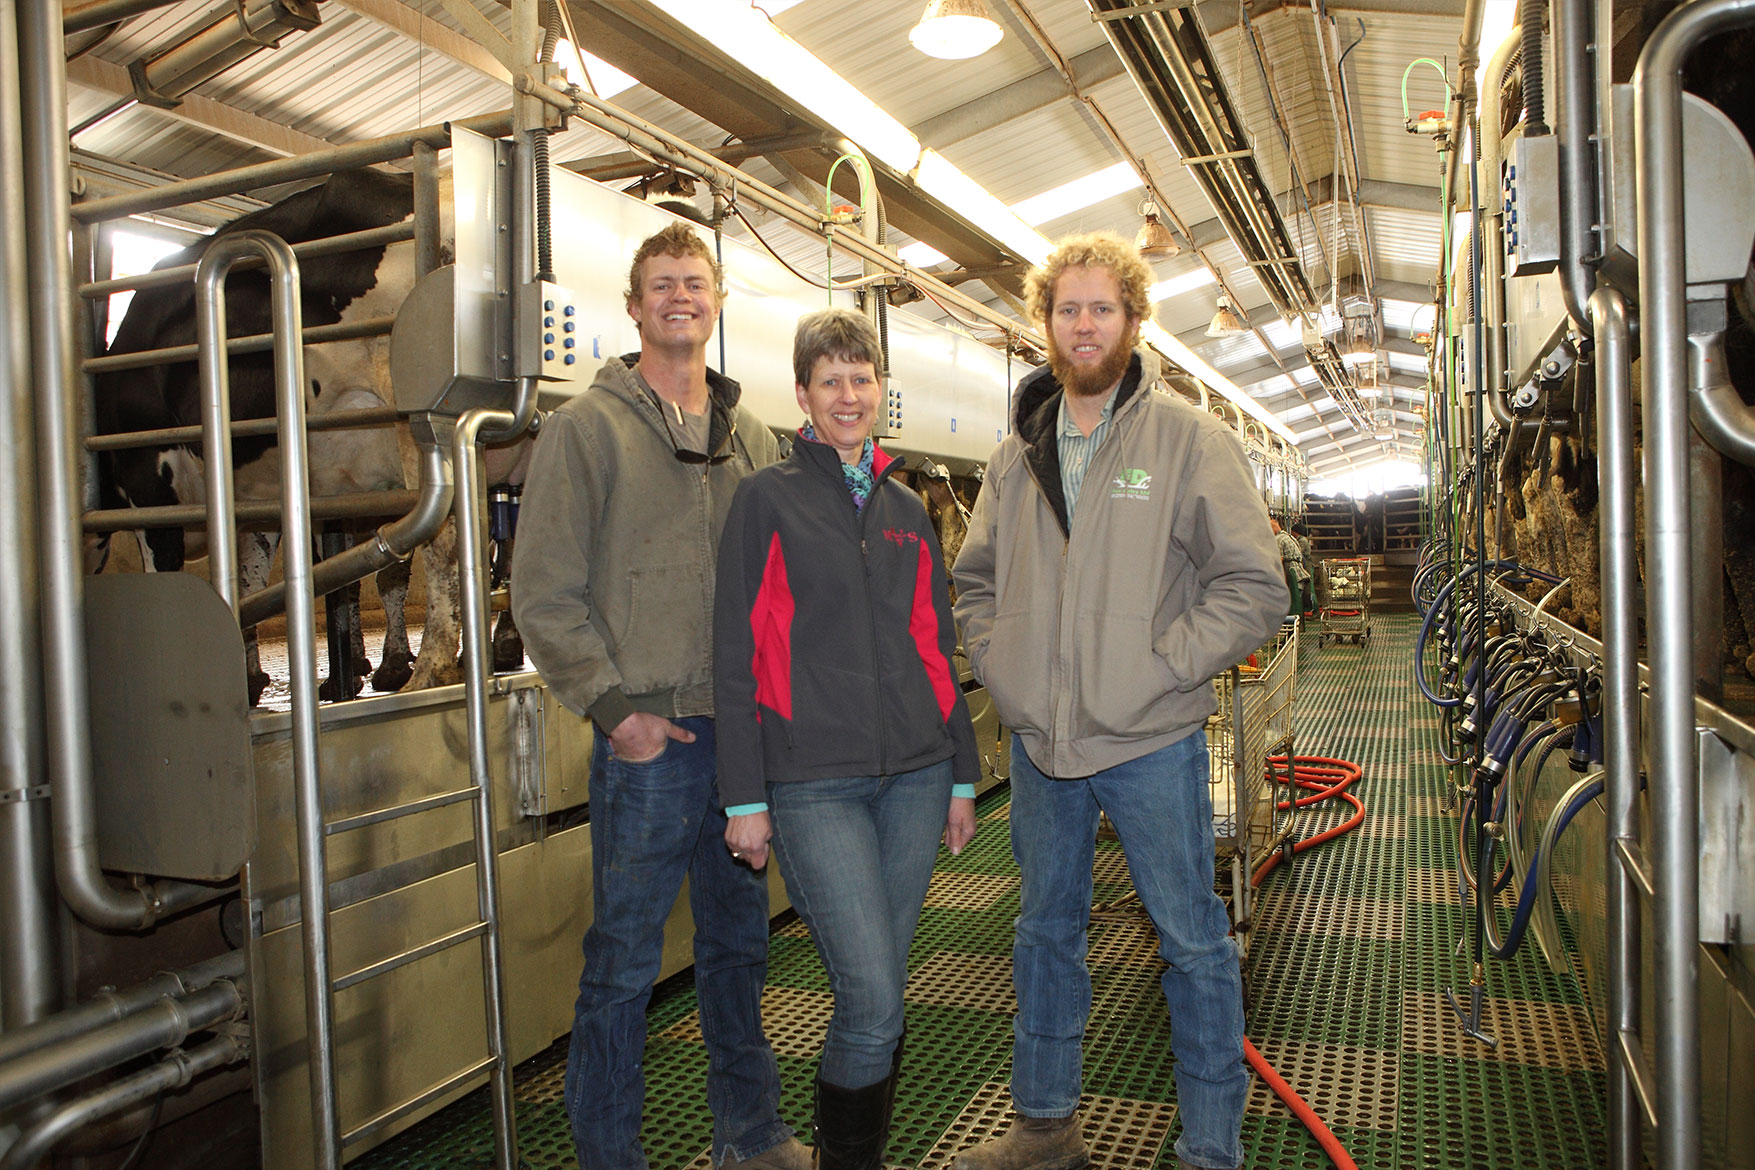 The DeVos family inside the milking parlor at Fox Dairy.